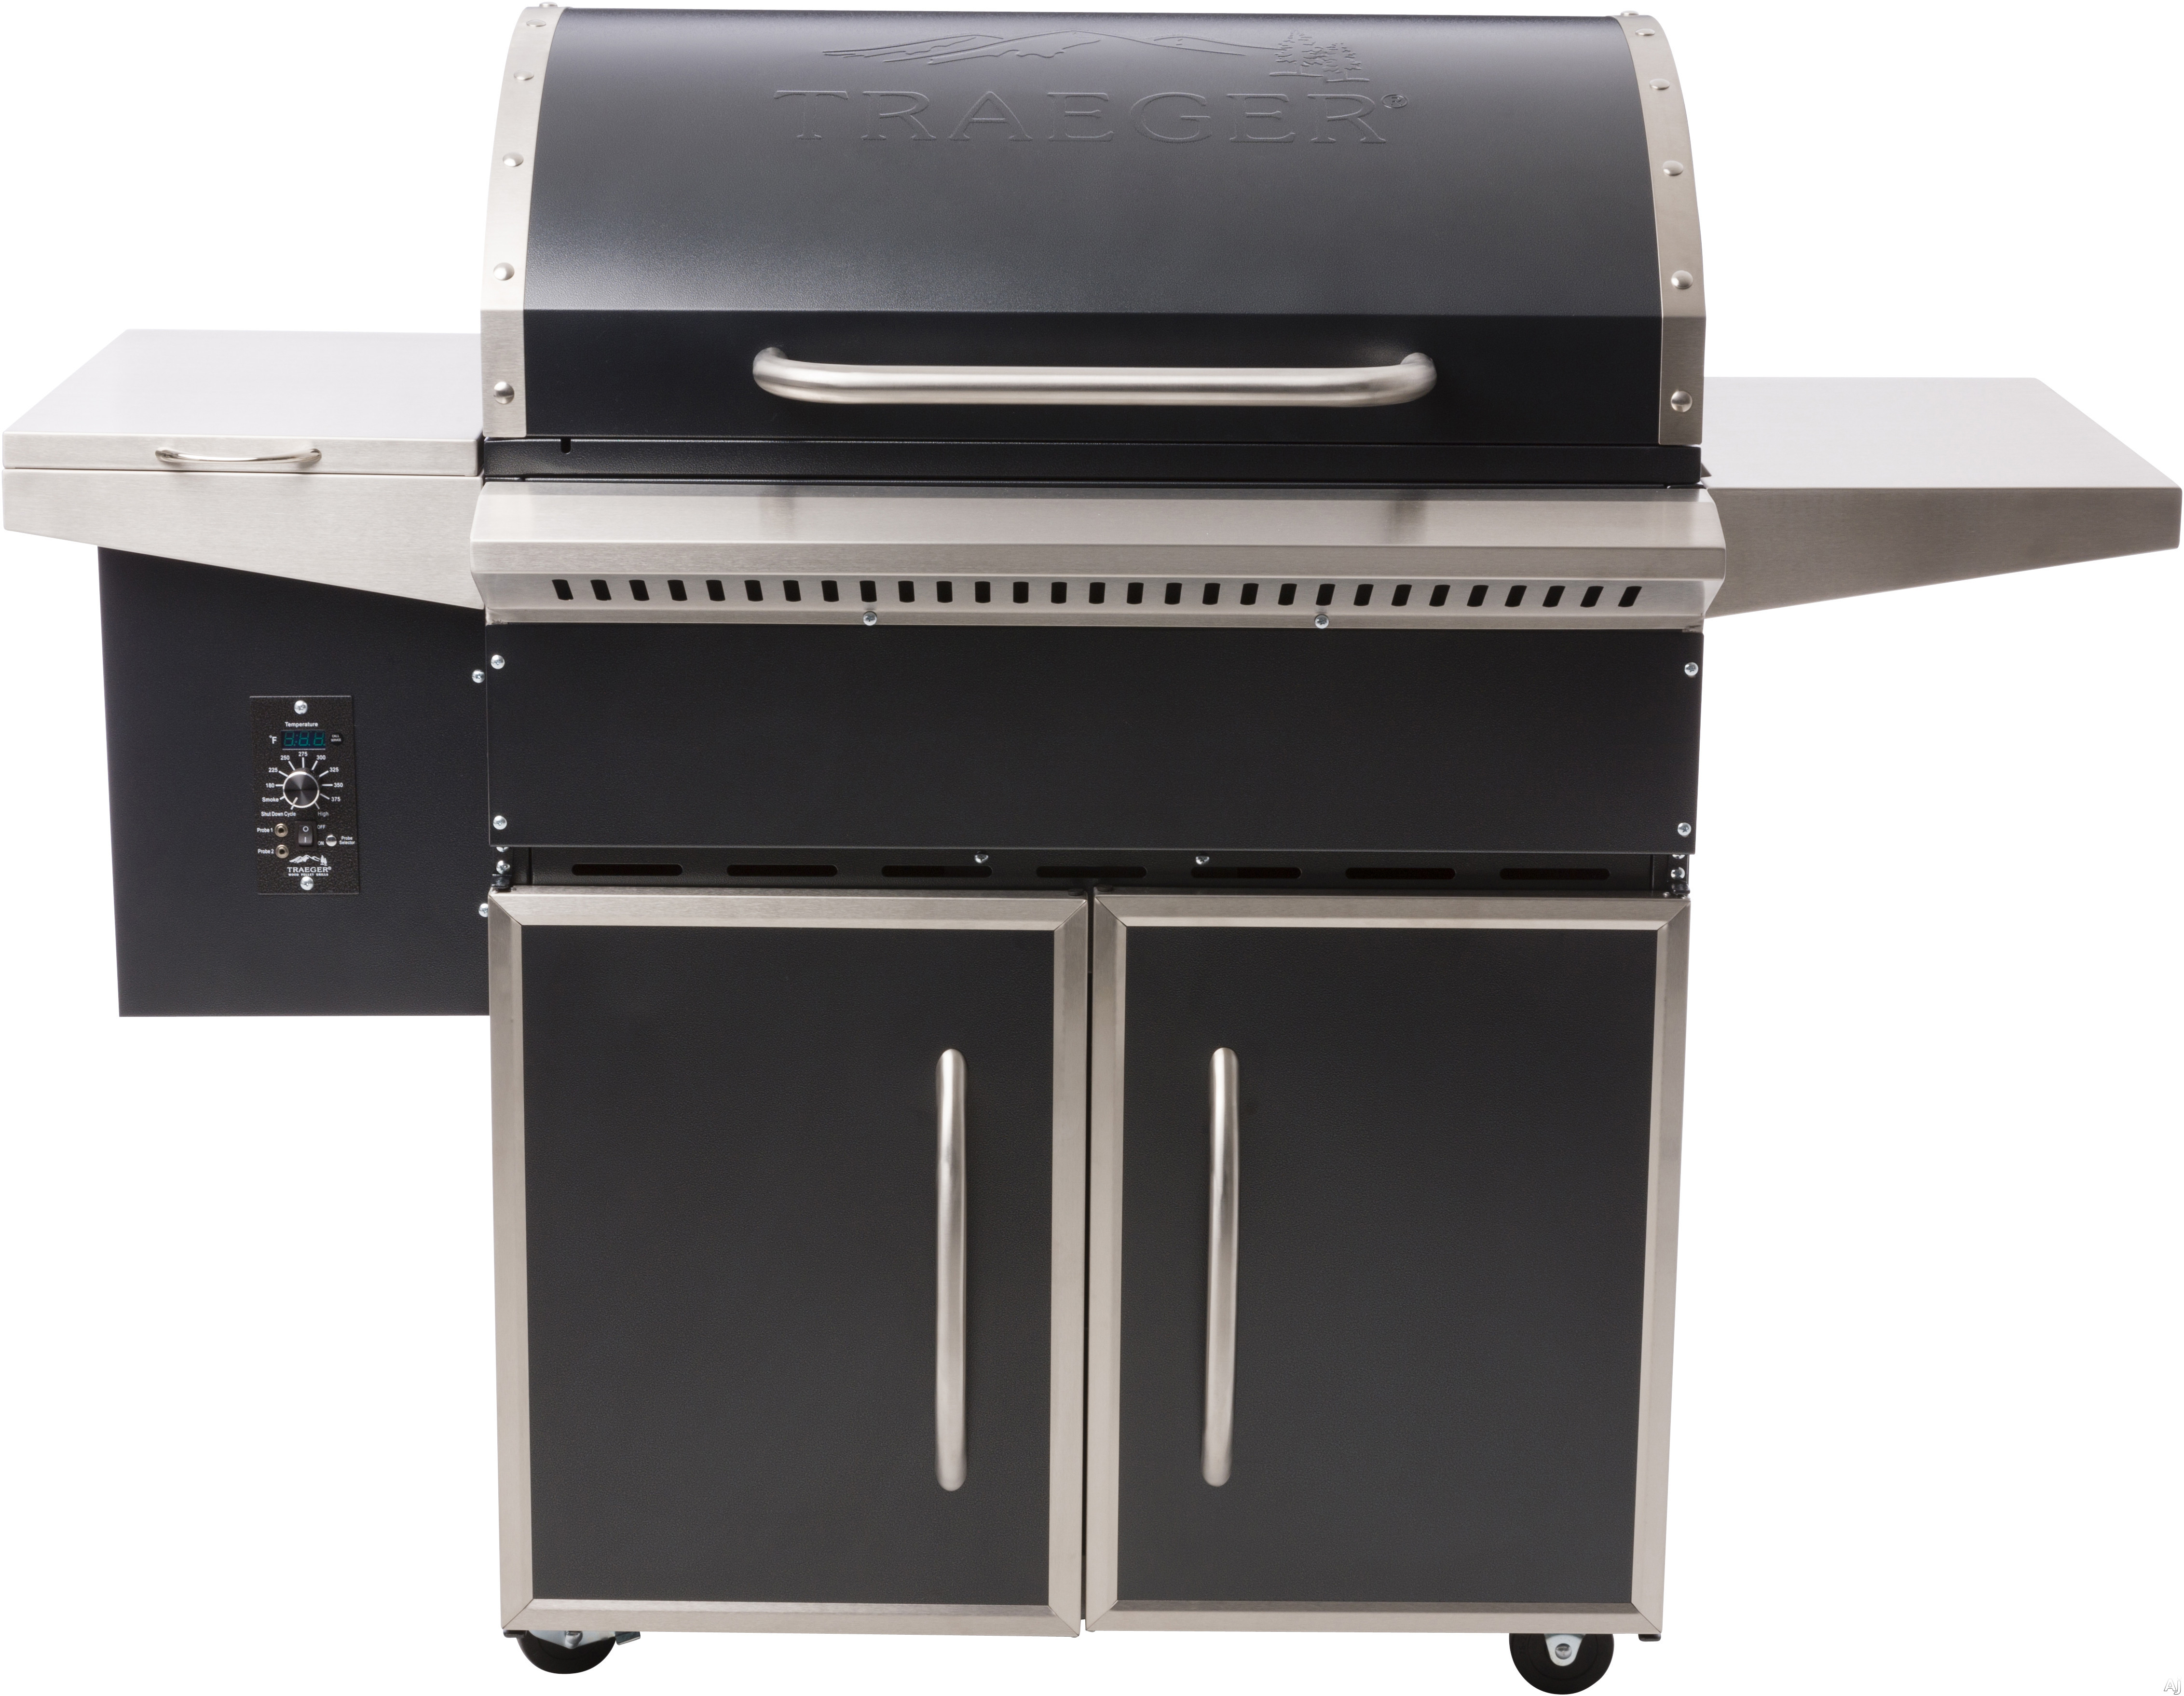 Traeger Select Pro TFS81PUB 57 Inch Freestanding Wood Pellet Grill with Convection, Meat Probes, One-Button Ignition, 806 sq. in. Grilling Area, 36,000 BTUs, Locking Caster Legs, Variable Auger, Automatic Shut Down Cycle and Optional Hardwood Pellets: Blue